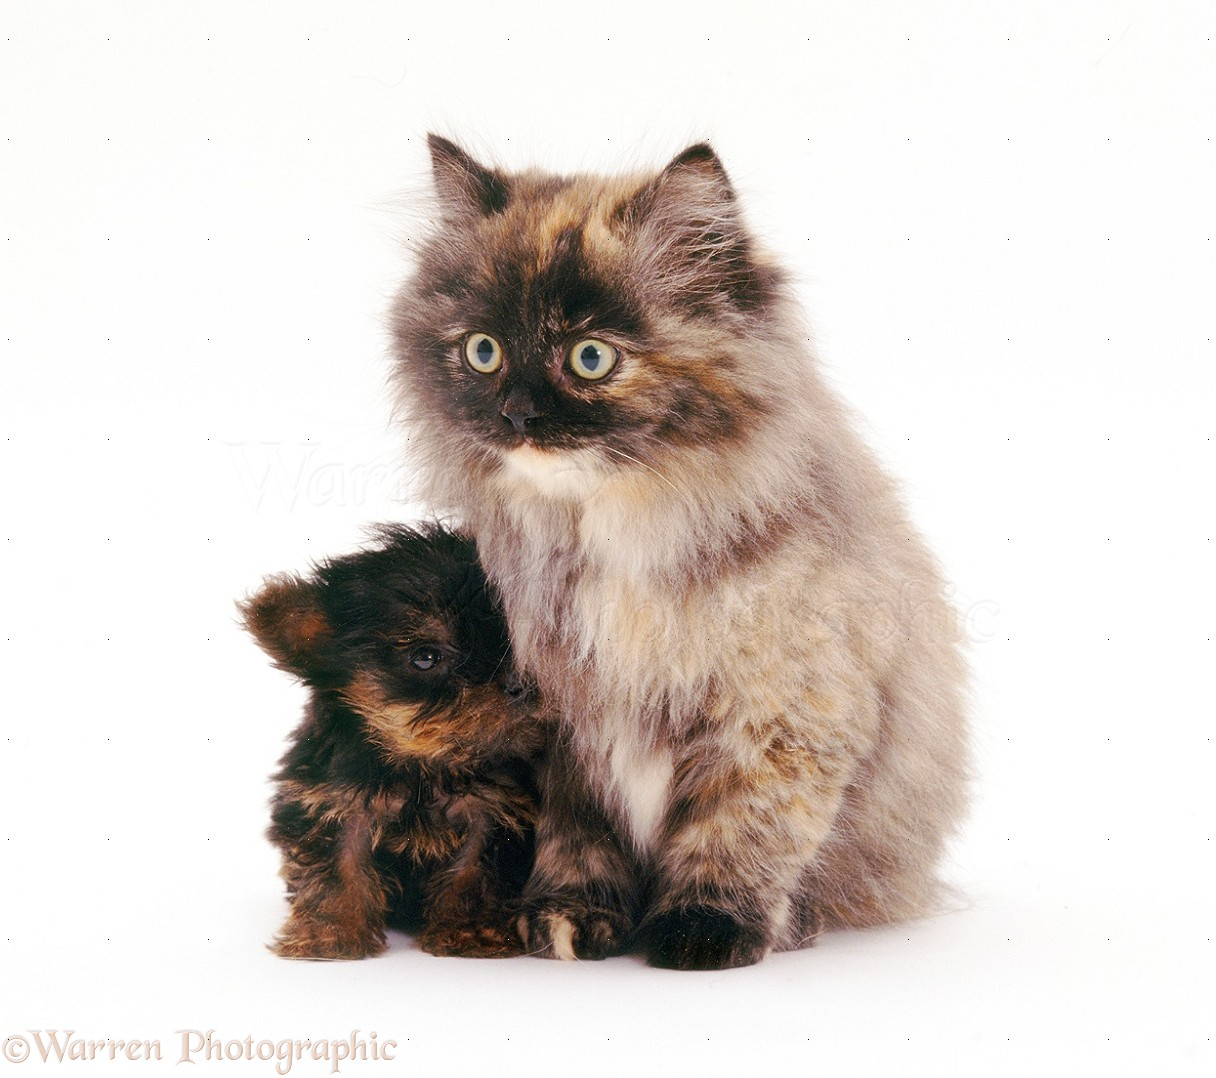 Wp26614 yorkshire terrier pup and fluffy tortoiseshell cat